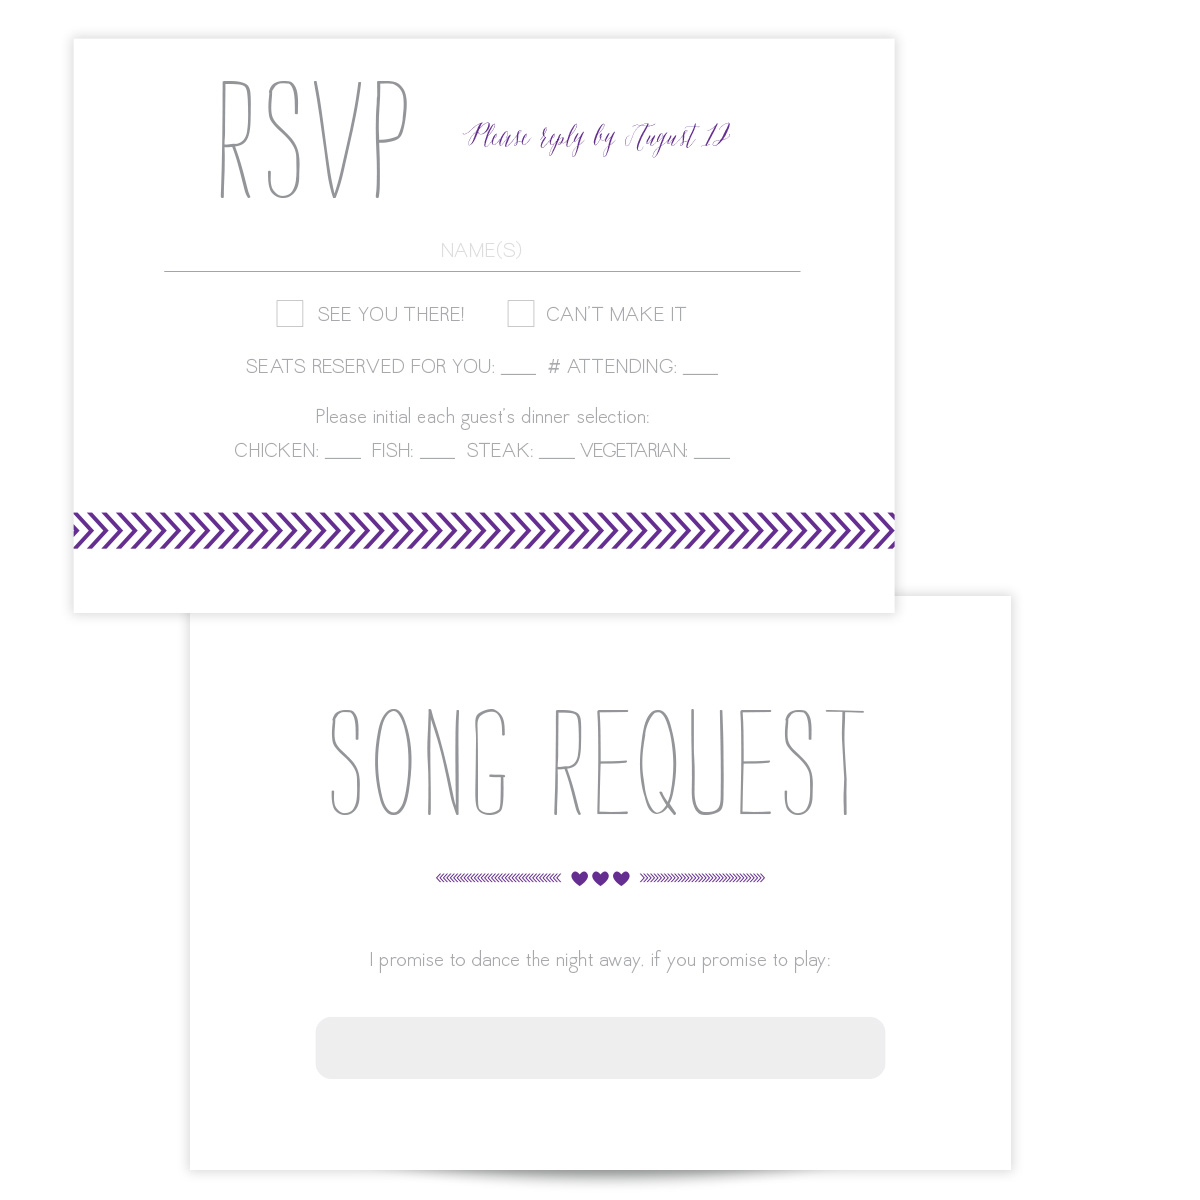 Purple Wedding Invitation - Arrow Love - Pixie